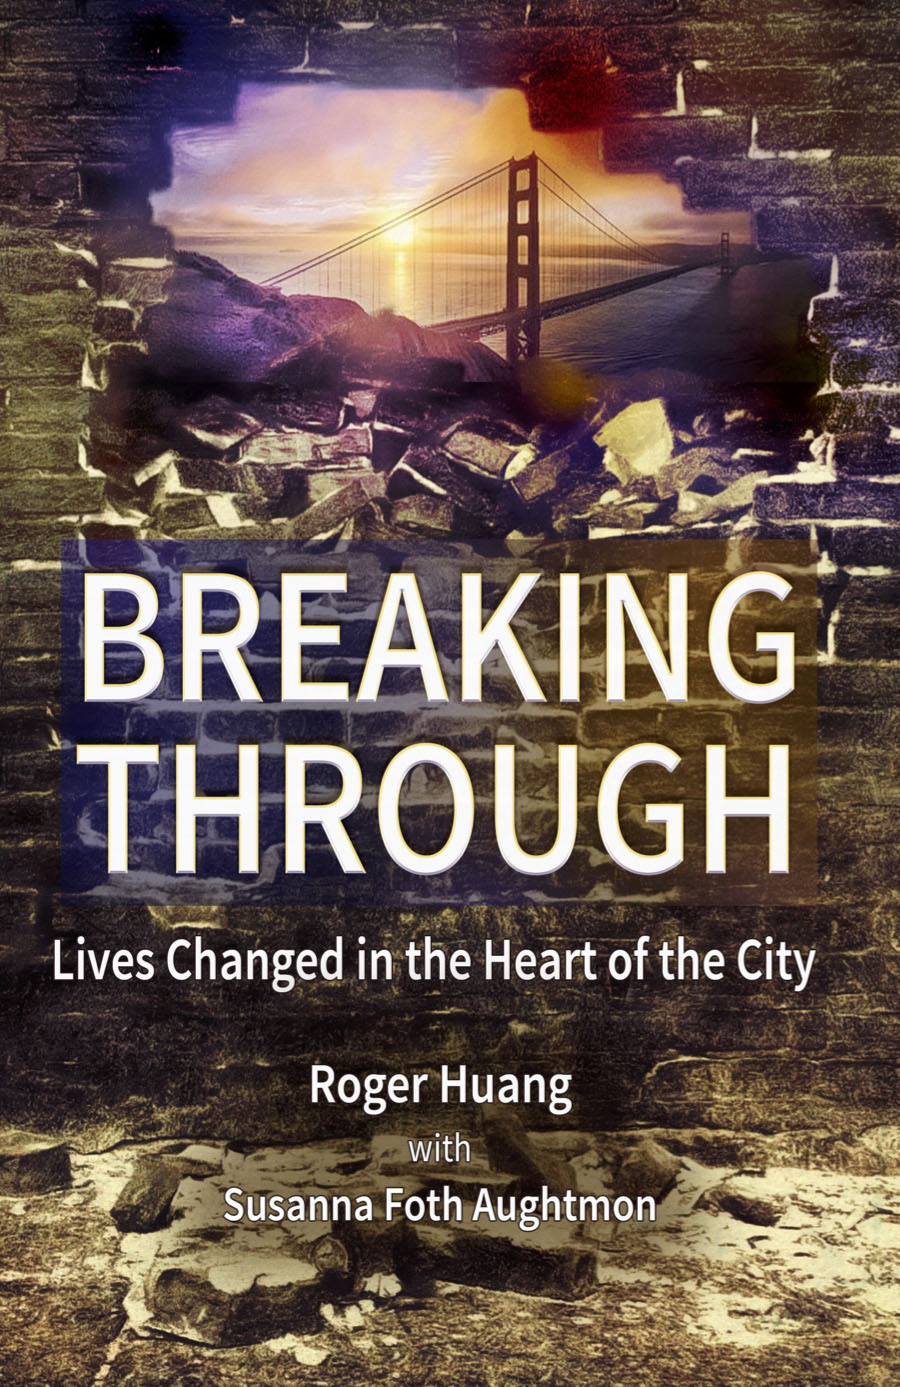 Breaking Through by Roger Huang   Lives Changed in the Heart of the City | Available on Amazon